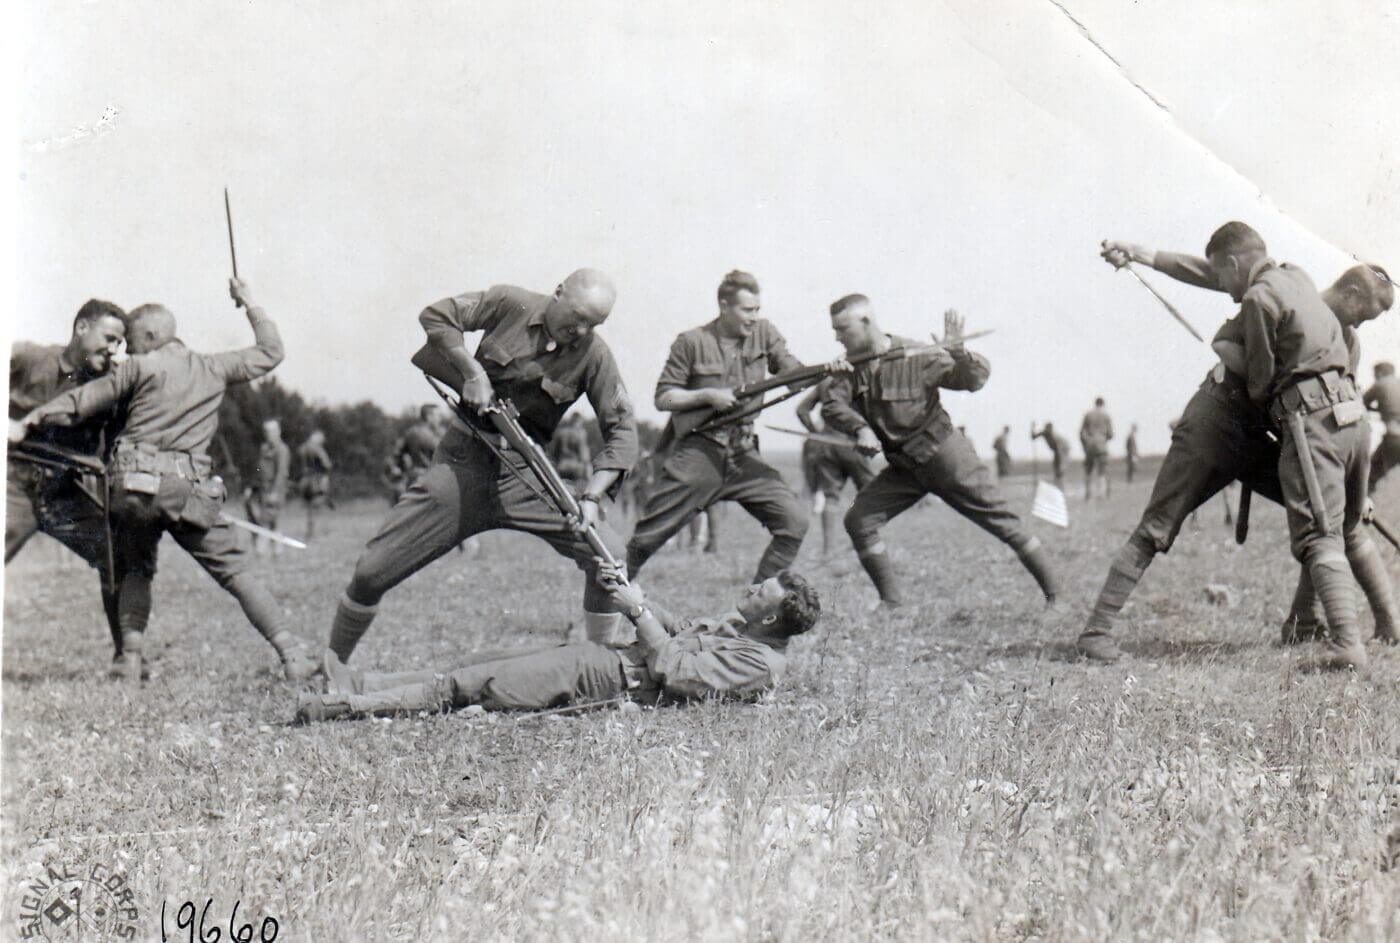 Bayonet training during WWI